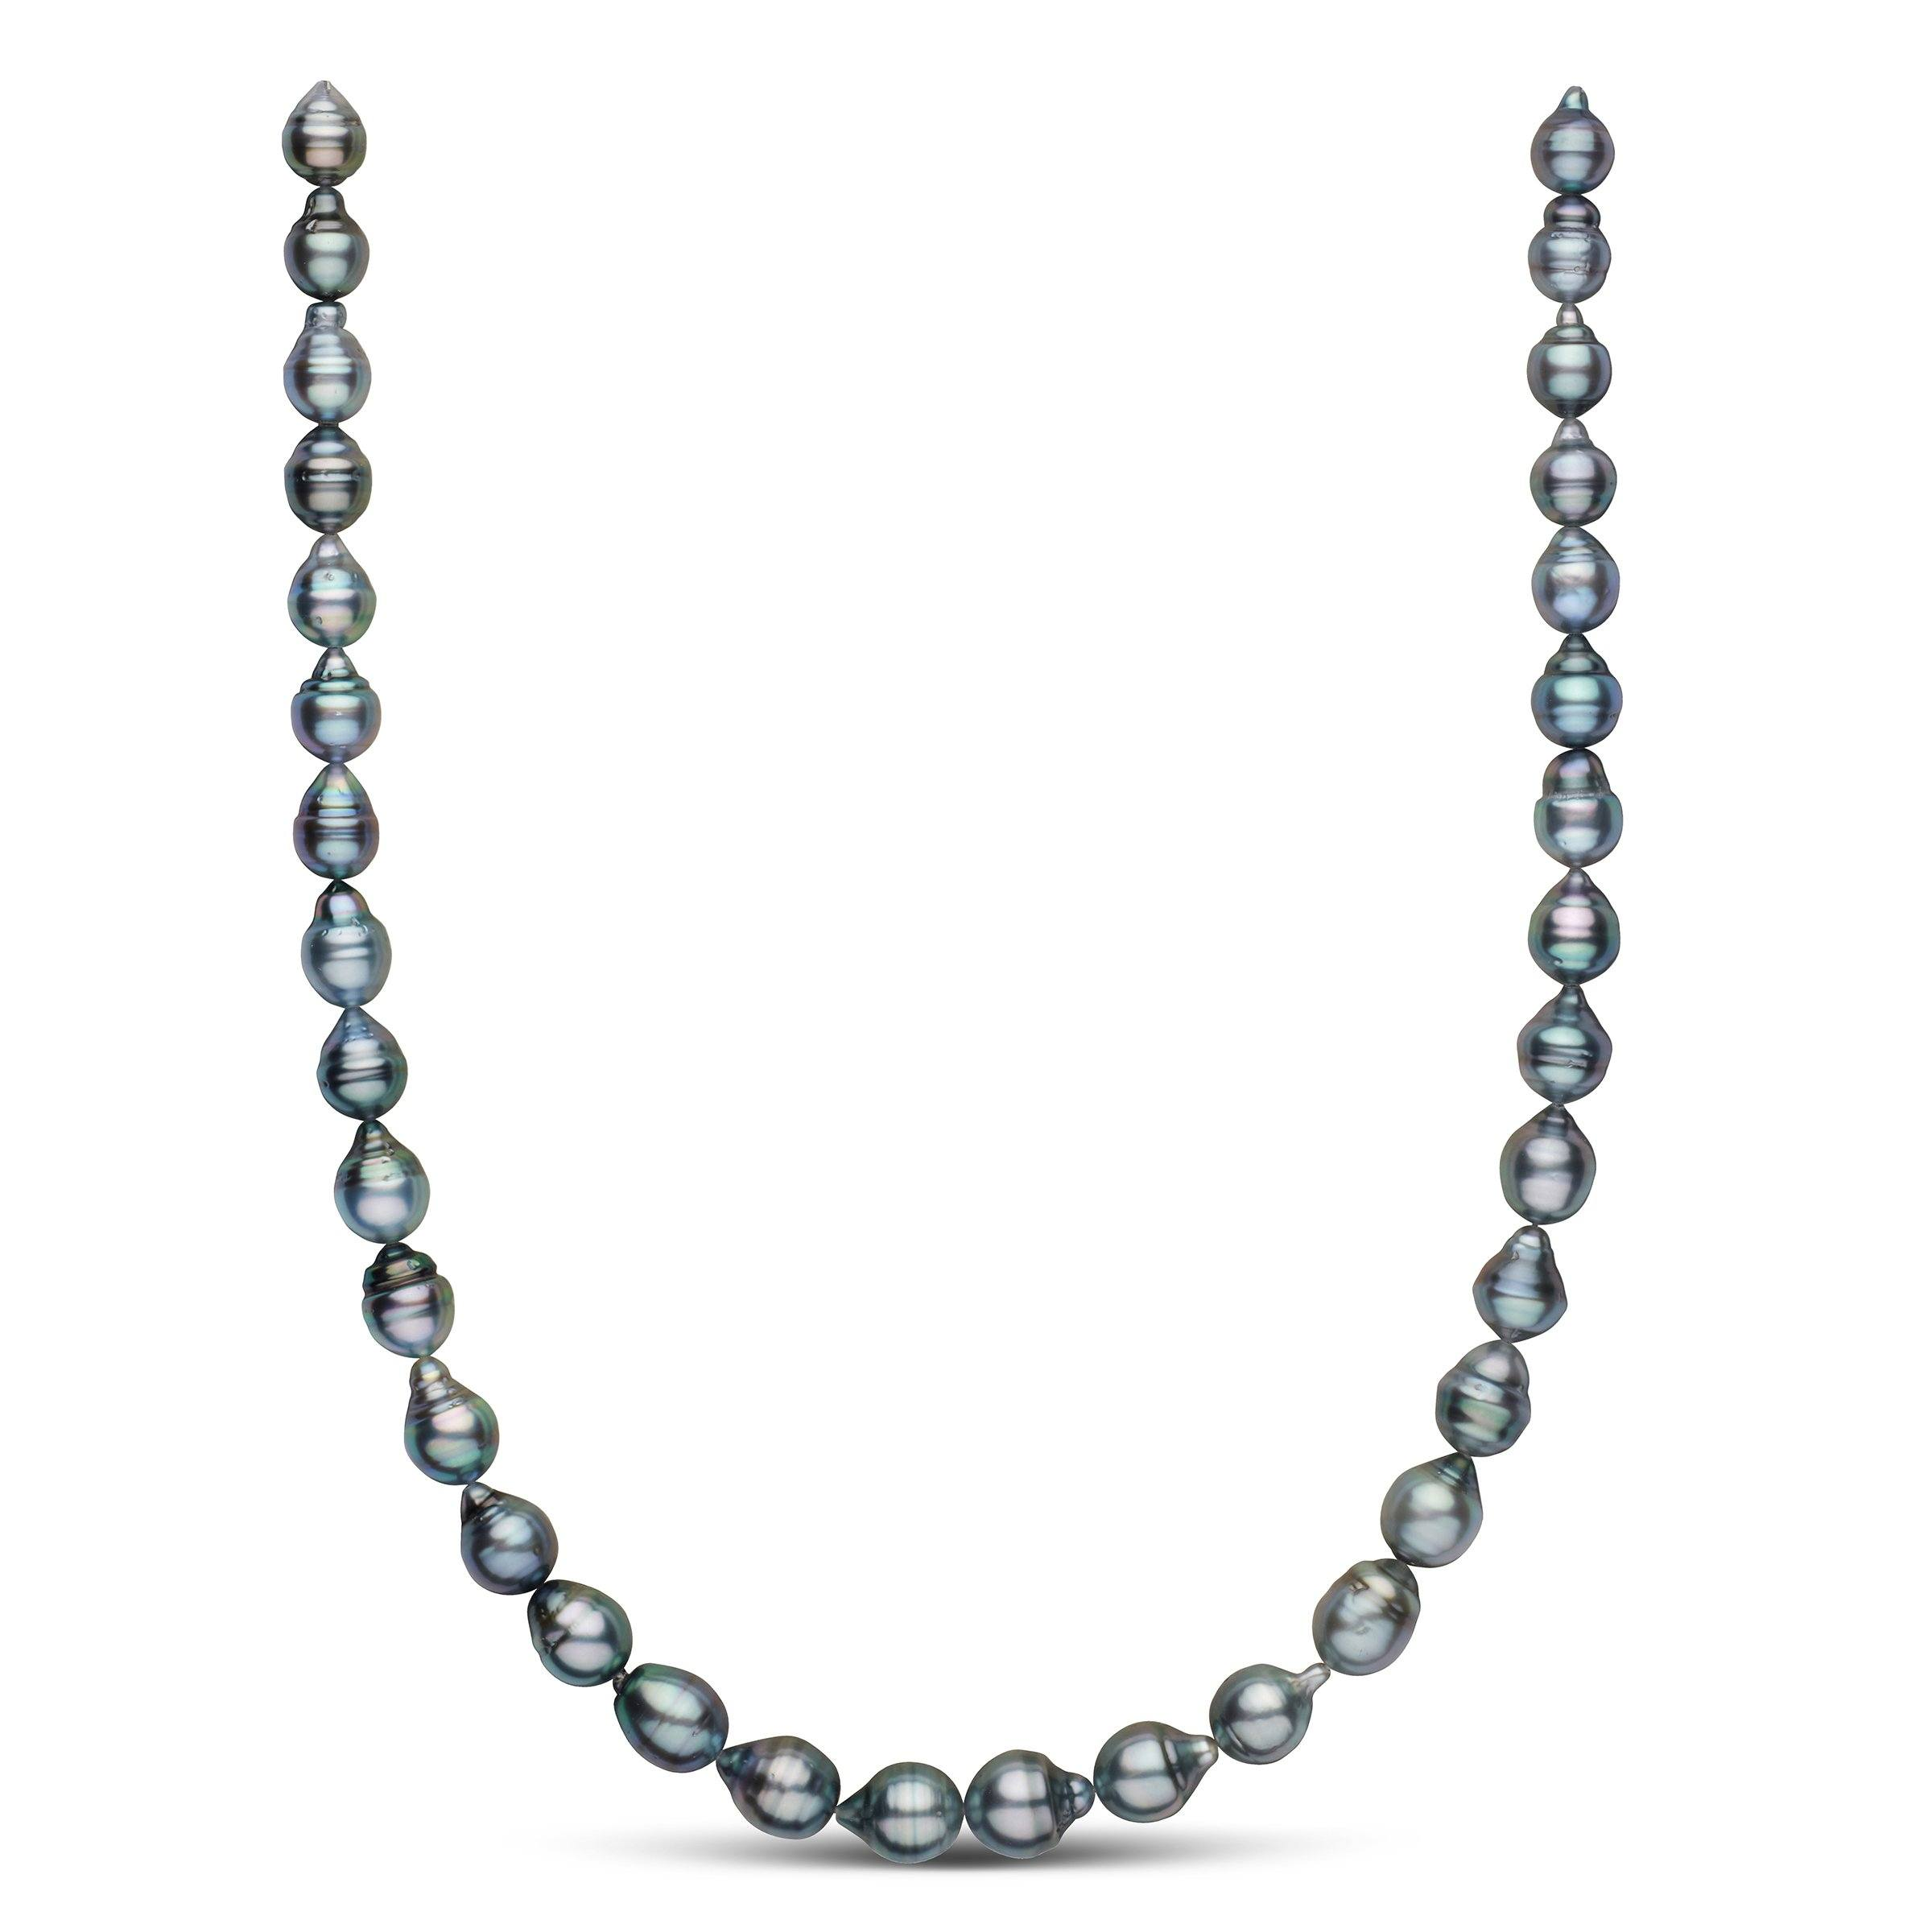 8.4-9.8 mm Baroque Tahitian Necklace with Silver Body Color and Blue Overtones